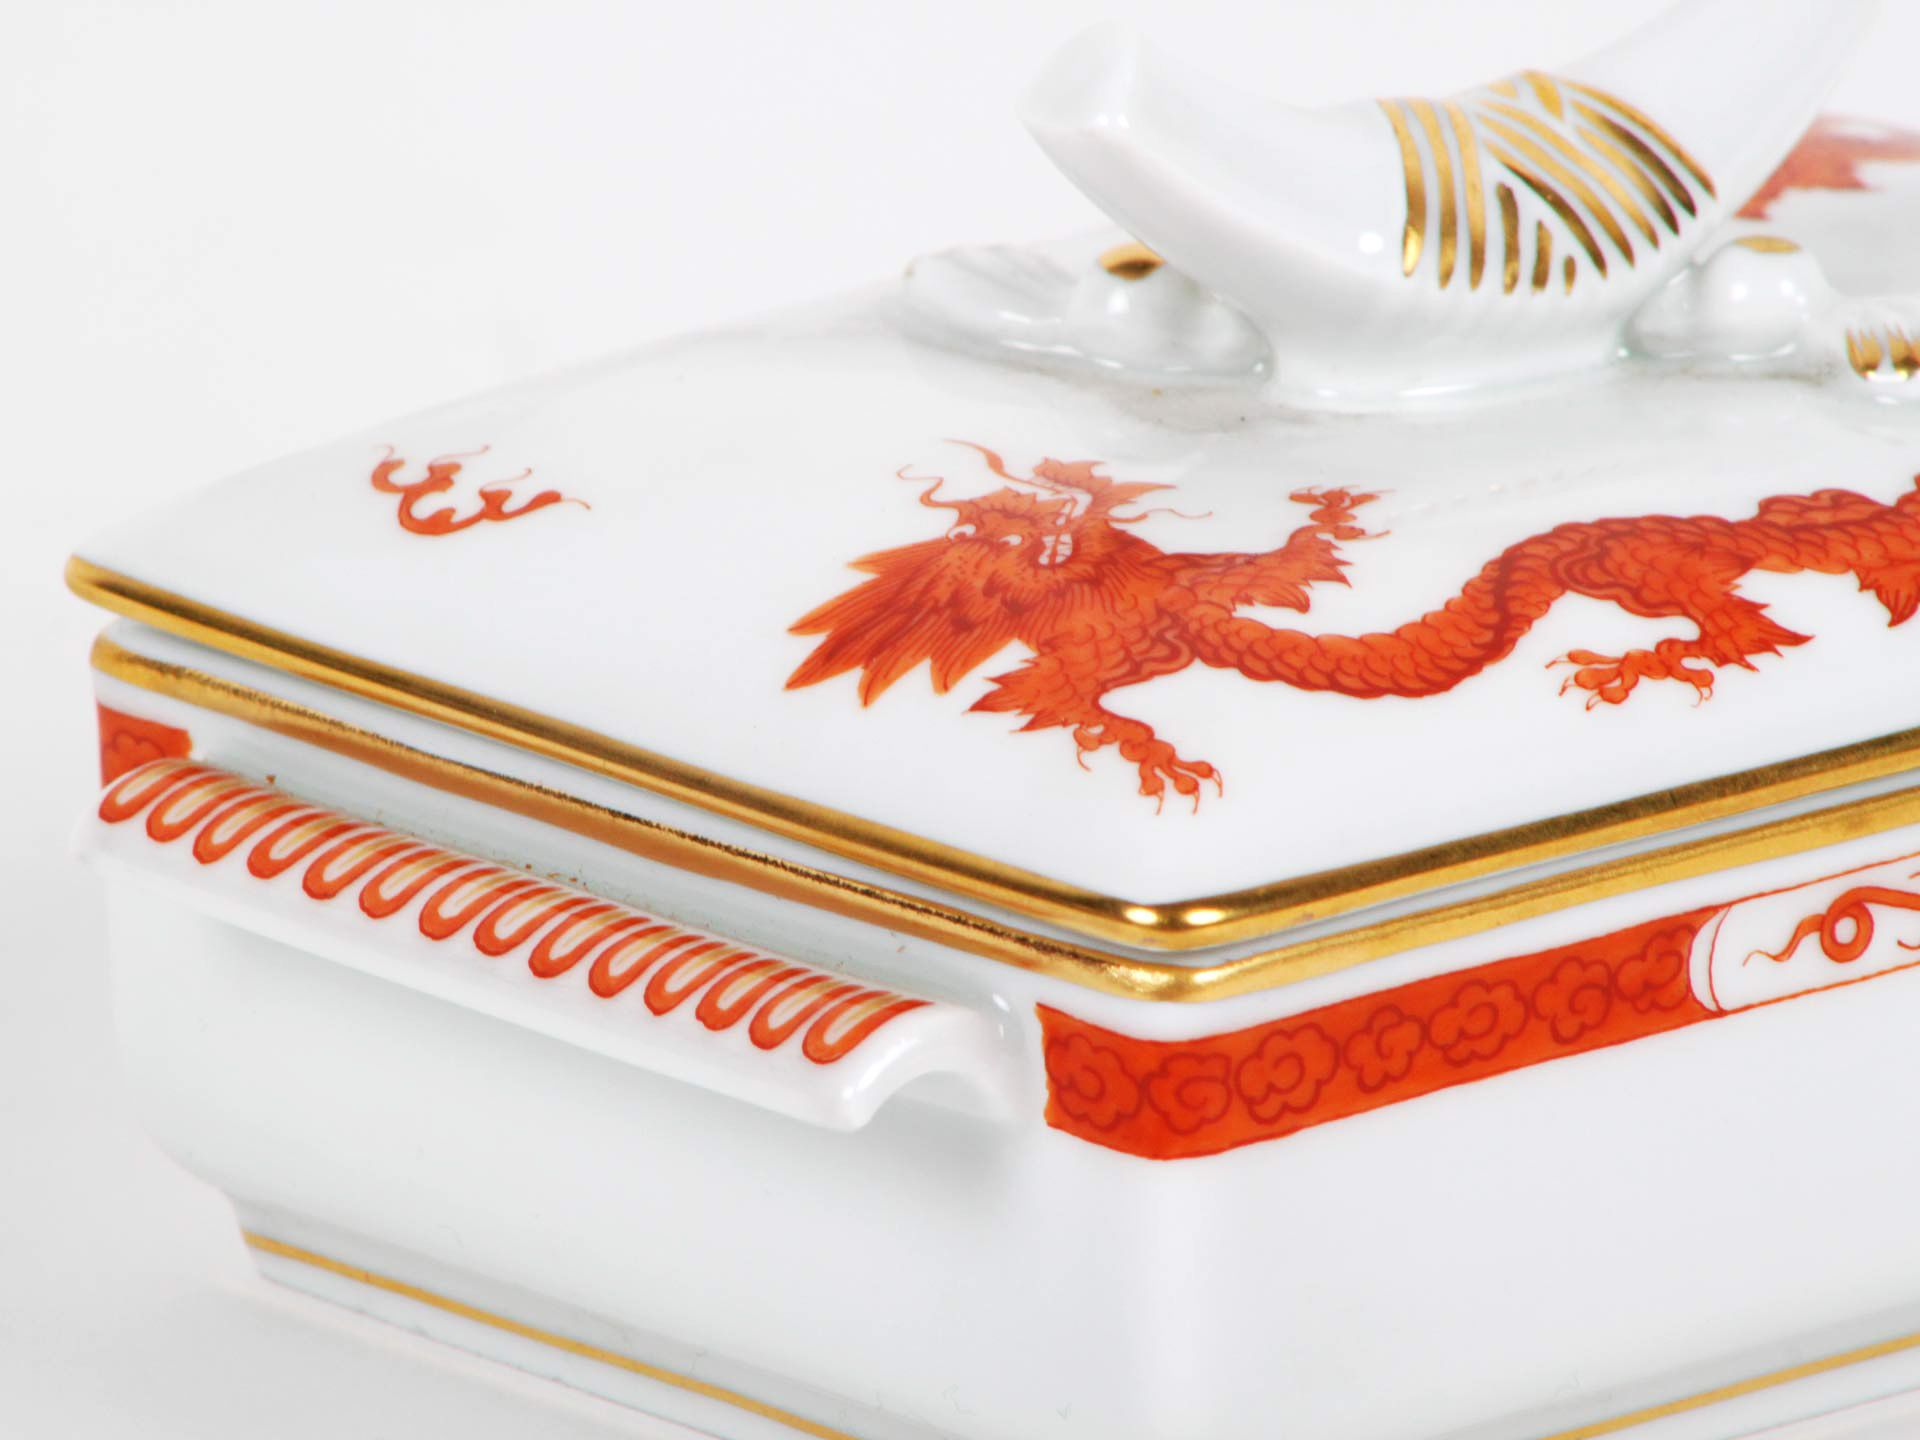 Meissen hand-painted porcelain case box red dragon model with orange tones decoration and gilded edge. Signed with the two swords of the Meissen factory. Germany. #Meissen #Porcelain #HandPainted #Red #dragon #decoration #TwoSwords #stamp #Germany #design #BellamysWorld